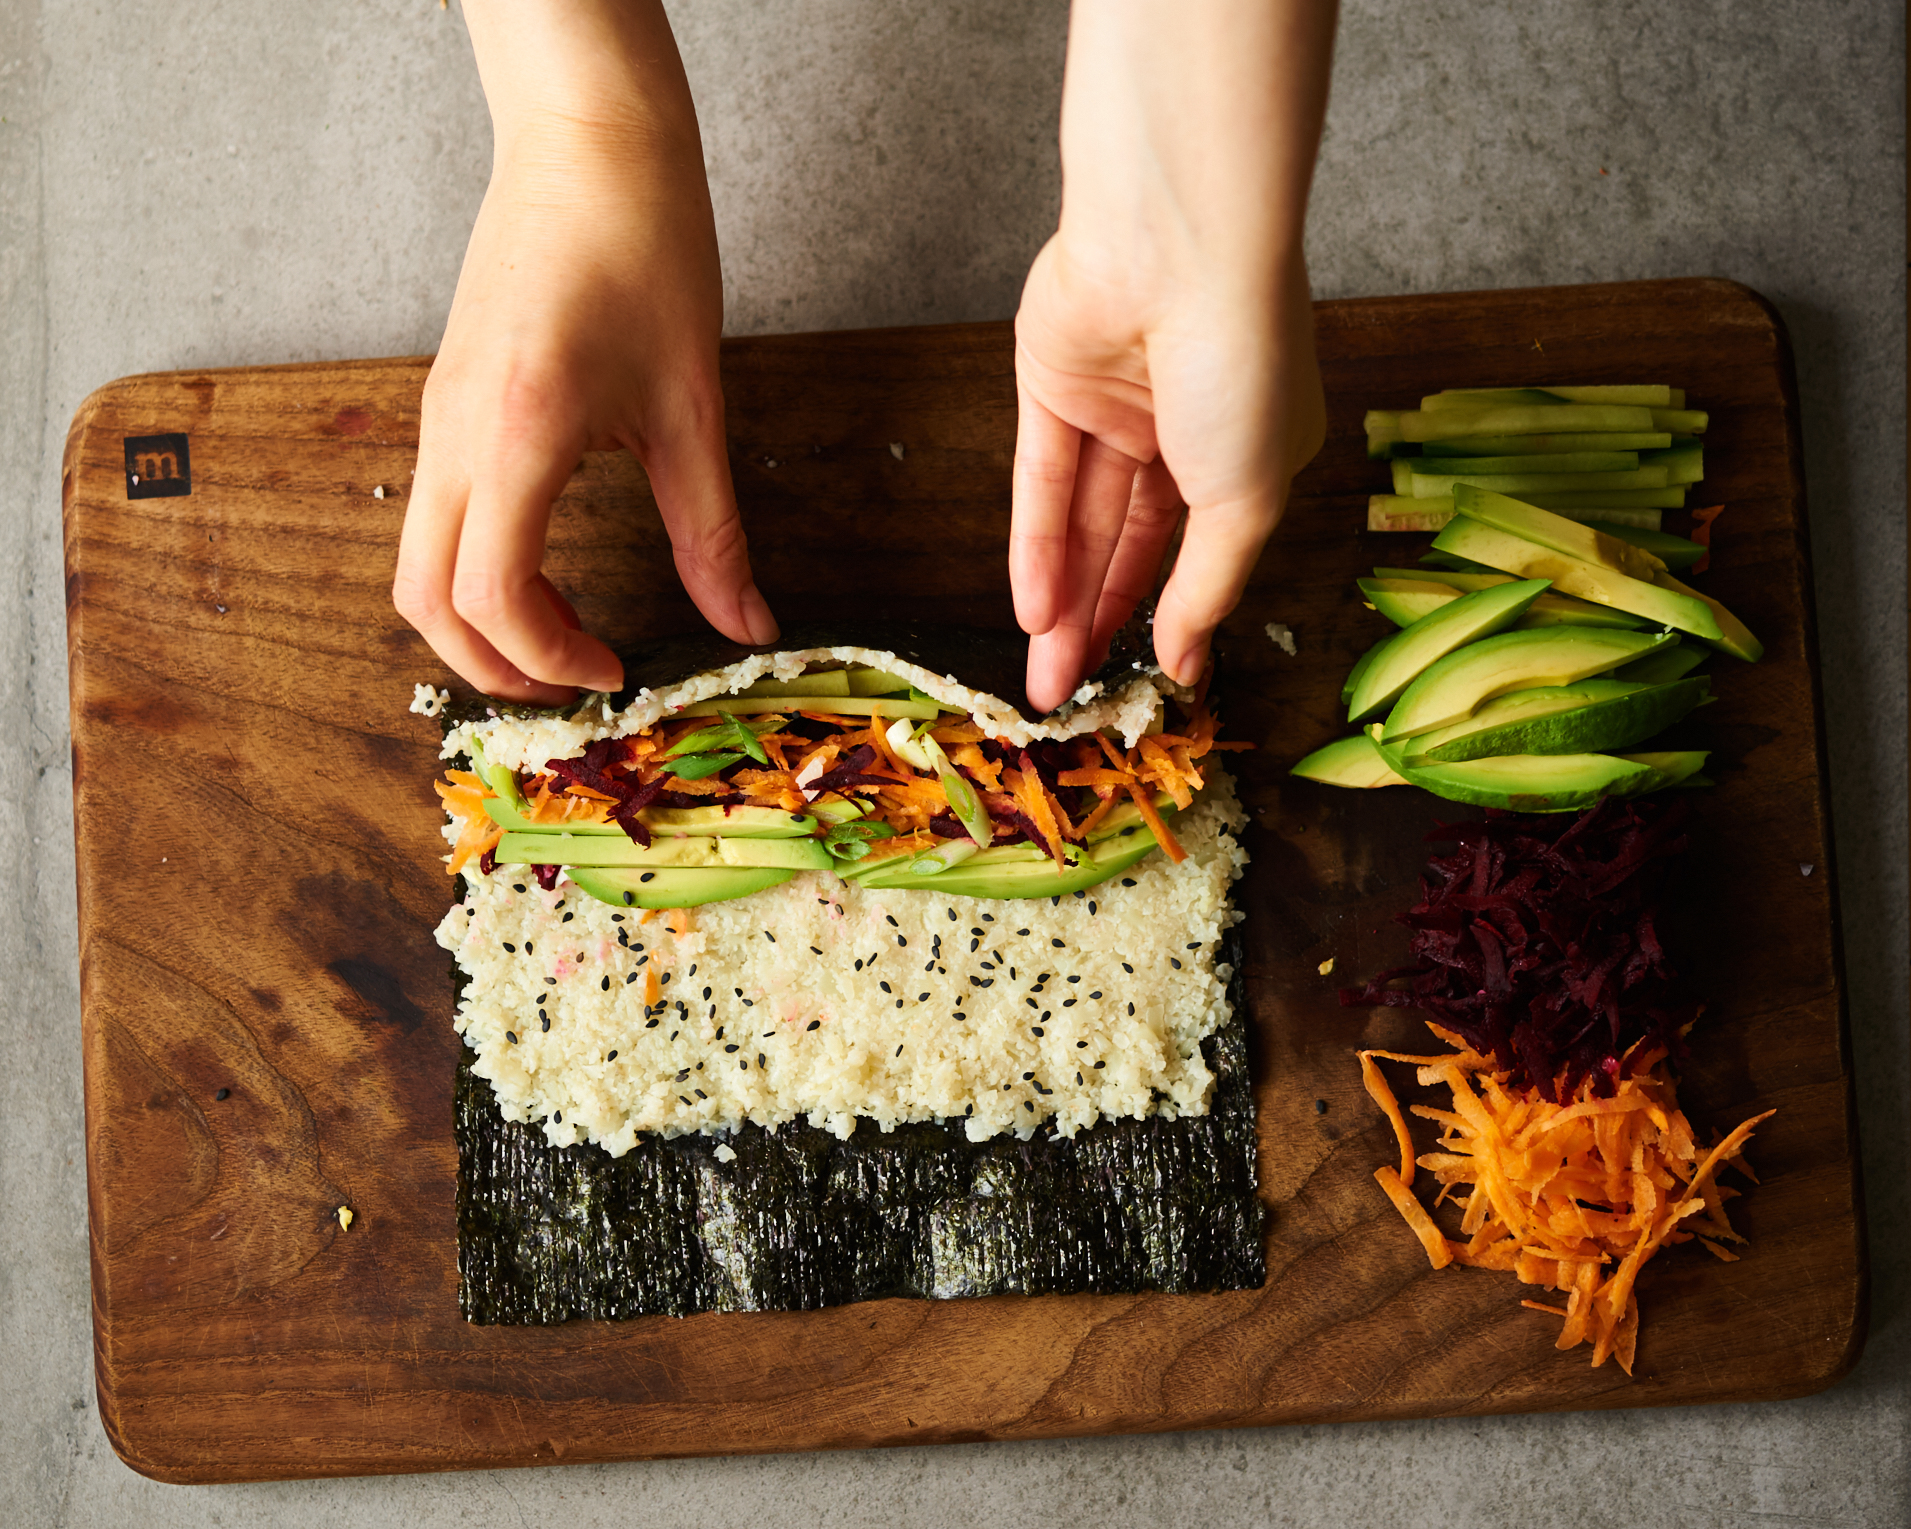 This recipe will teach you how to make sushi out of cauliflower rice that is grain free, vegan and paleo.